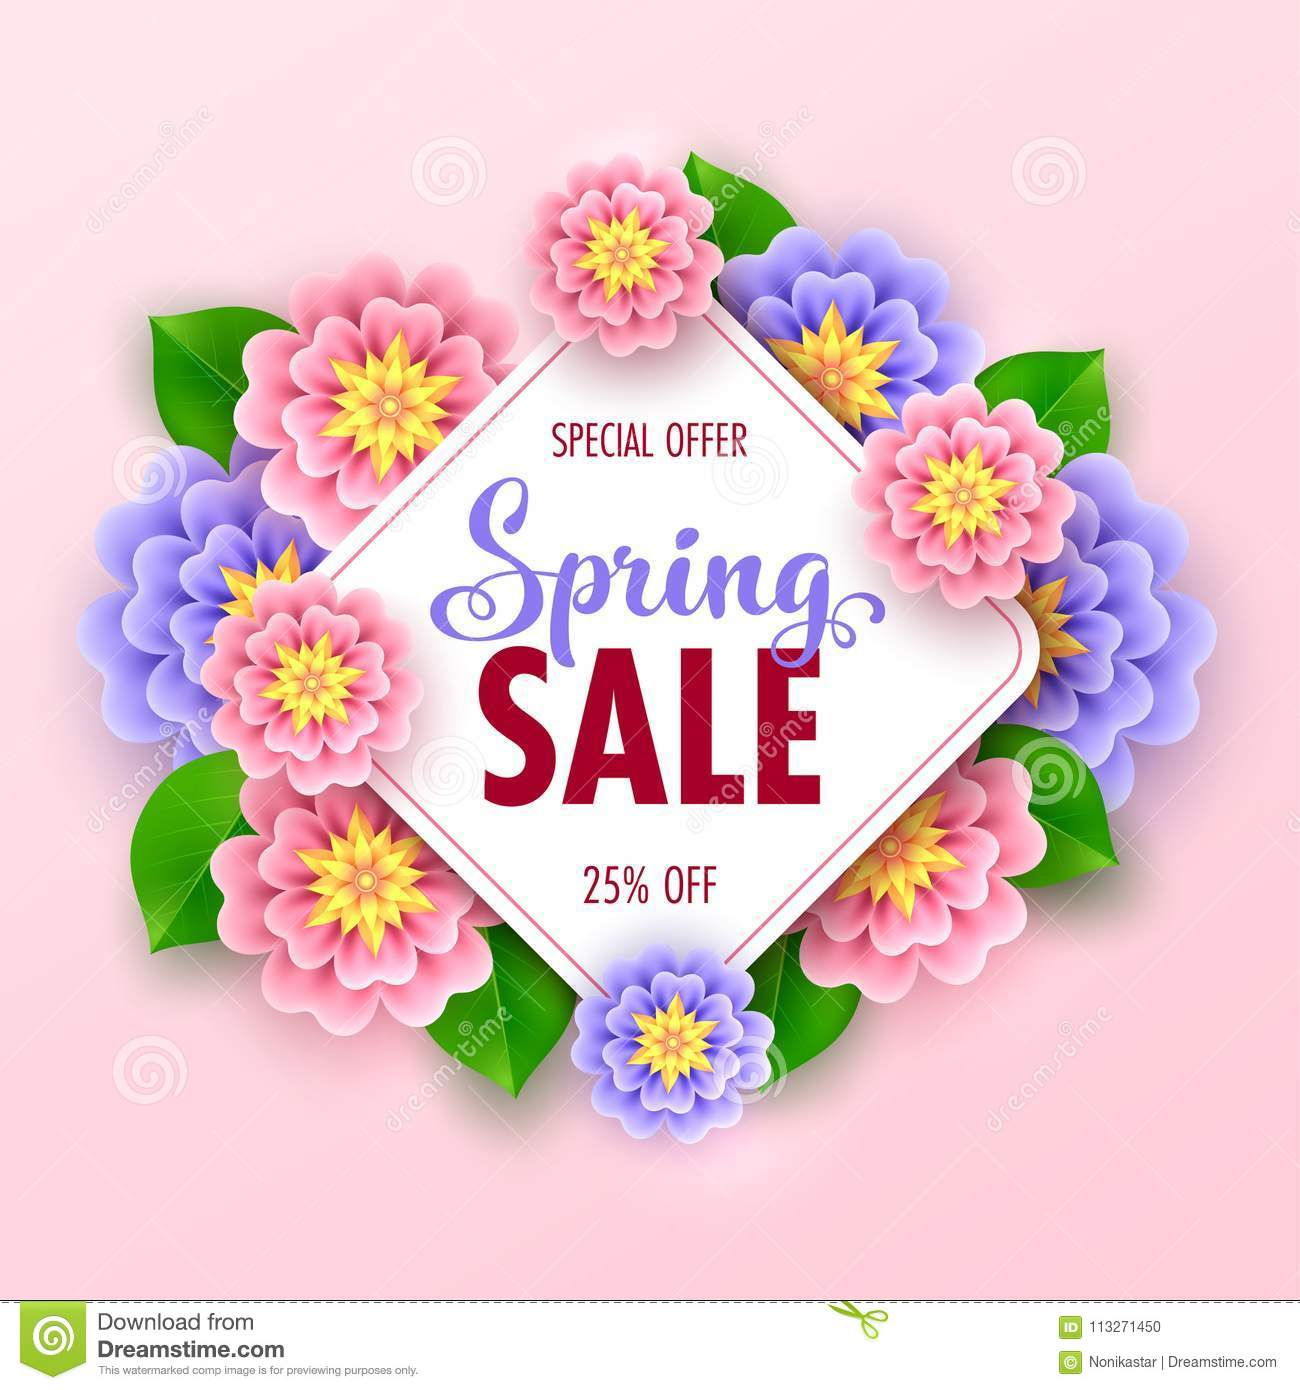 Floral spring sale banner stock vector illustration of frame floral spring sale banner with beautiful flowers for online shopping vector illustration izmirmasajfo